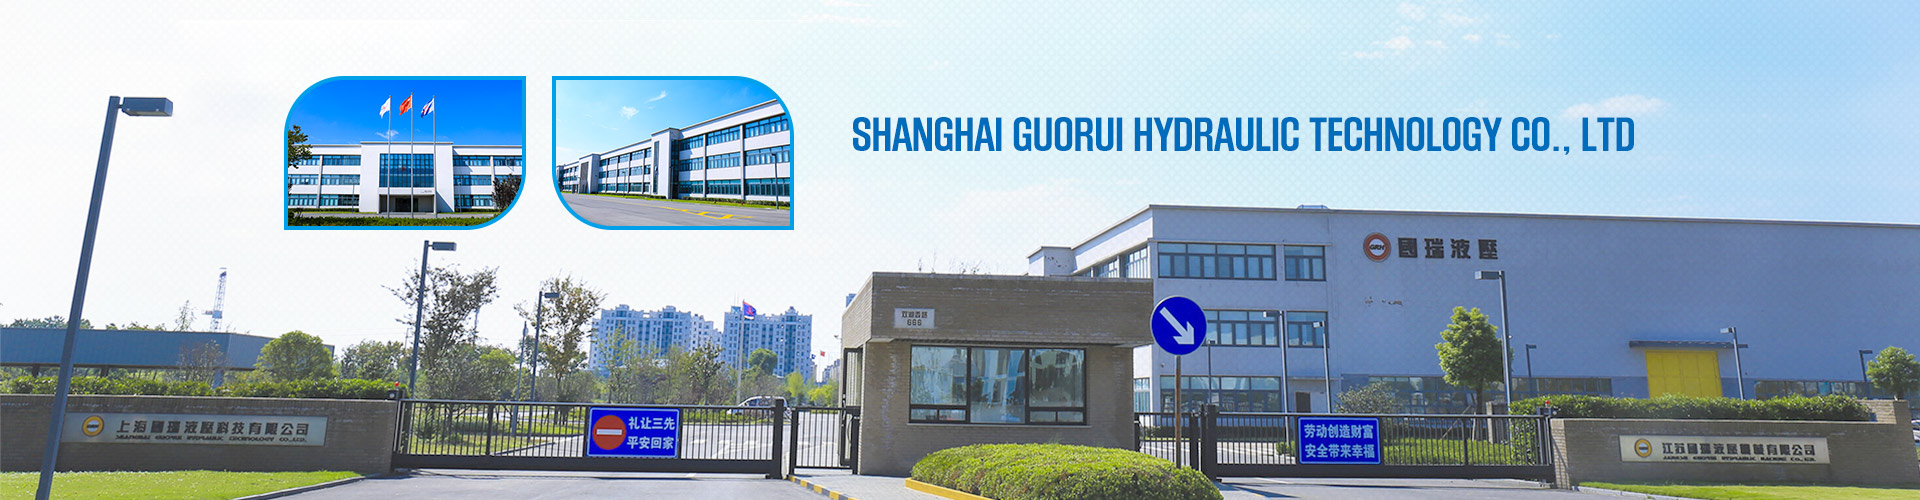 Shanghai Guorui Hydrolig Technology Co, Ltd